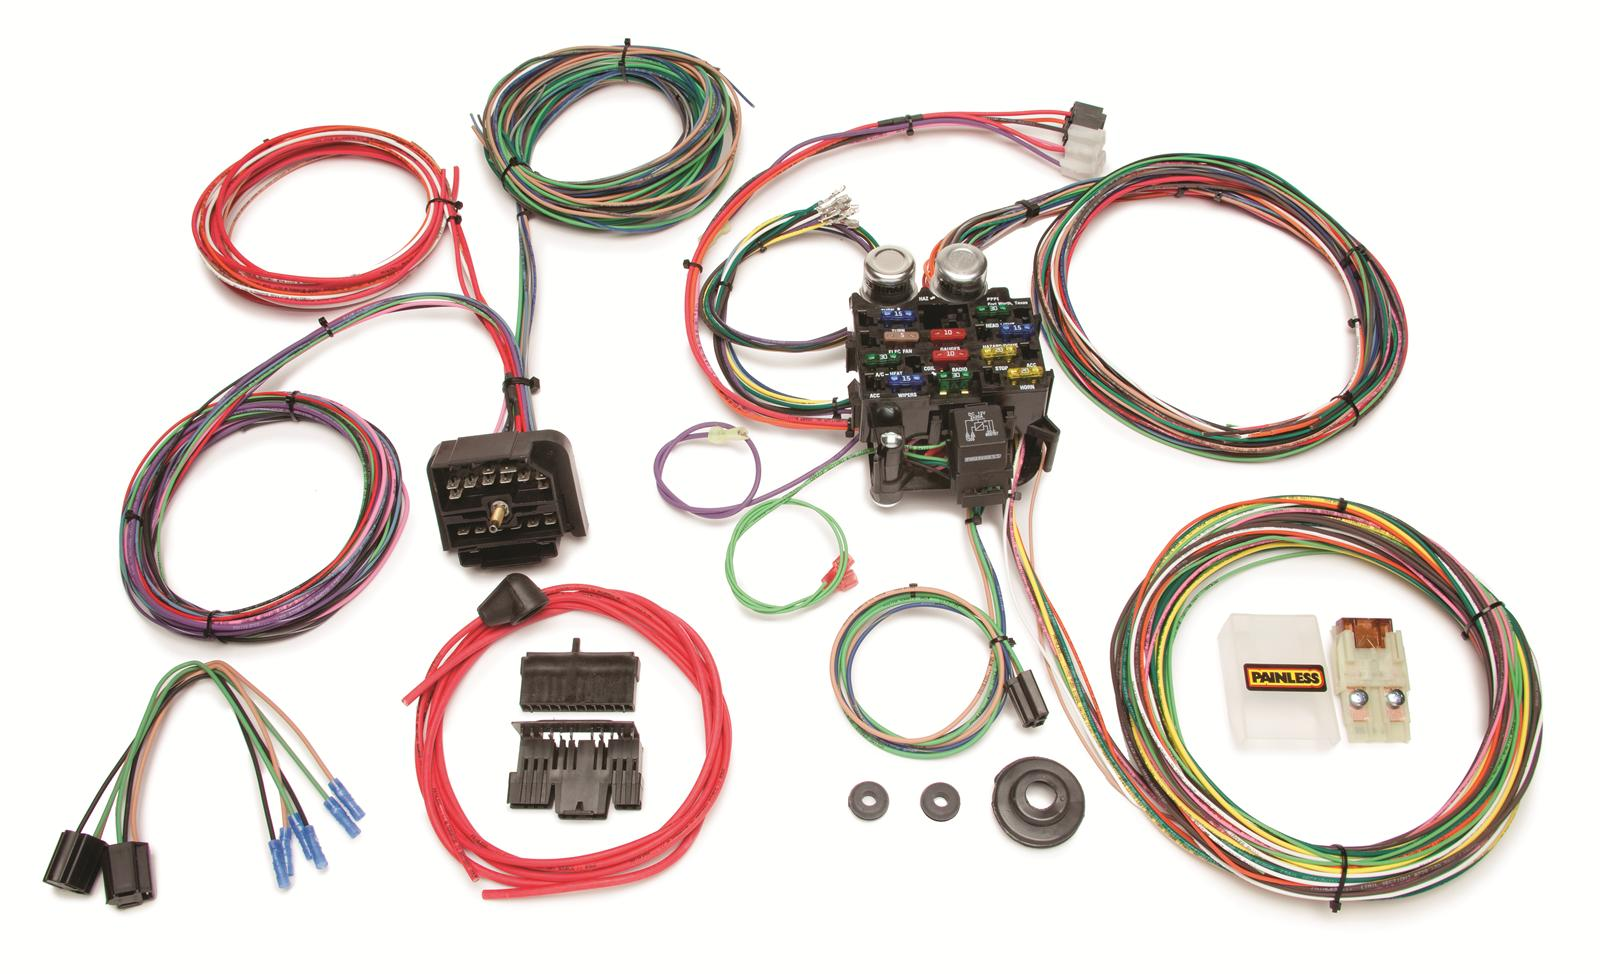 Painless Performance 22-Circuit Jeep CJ Harnesses 10106 - Free Shipping on  Orders Over $49 at Summit Racing